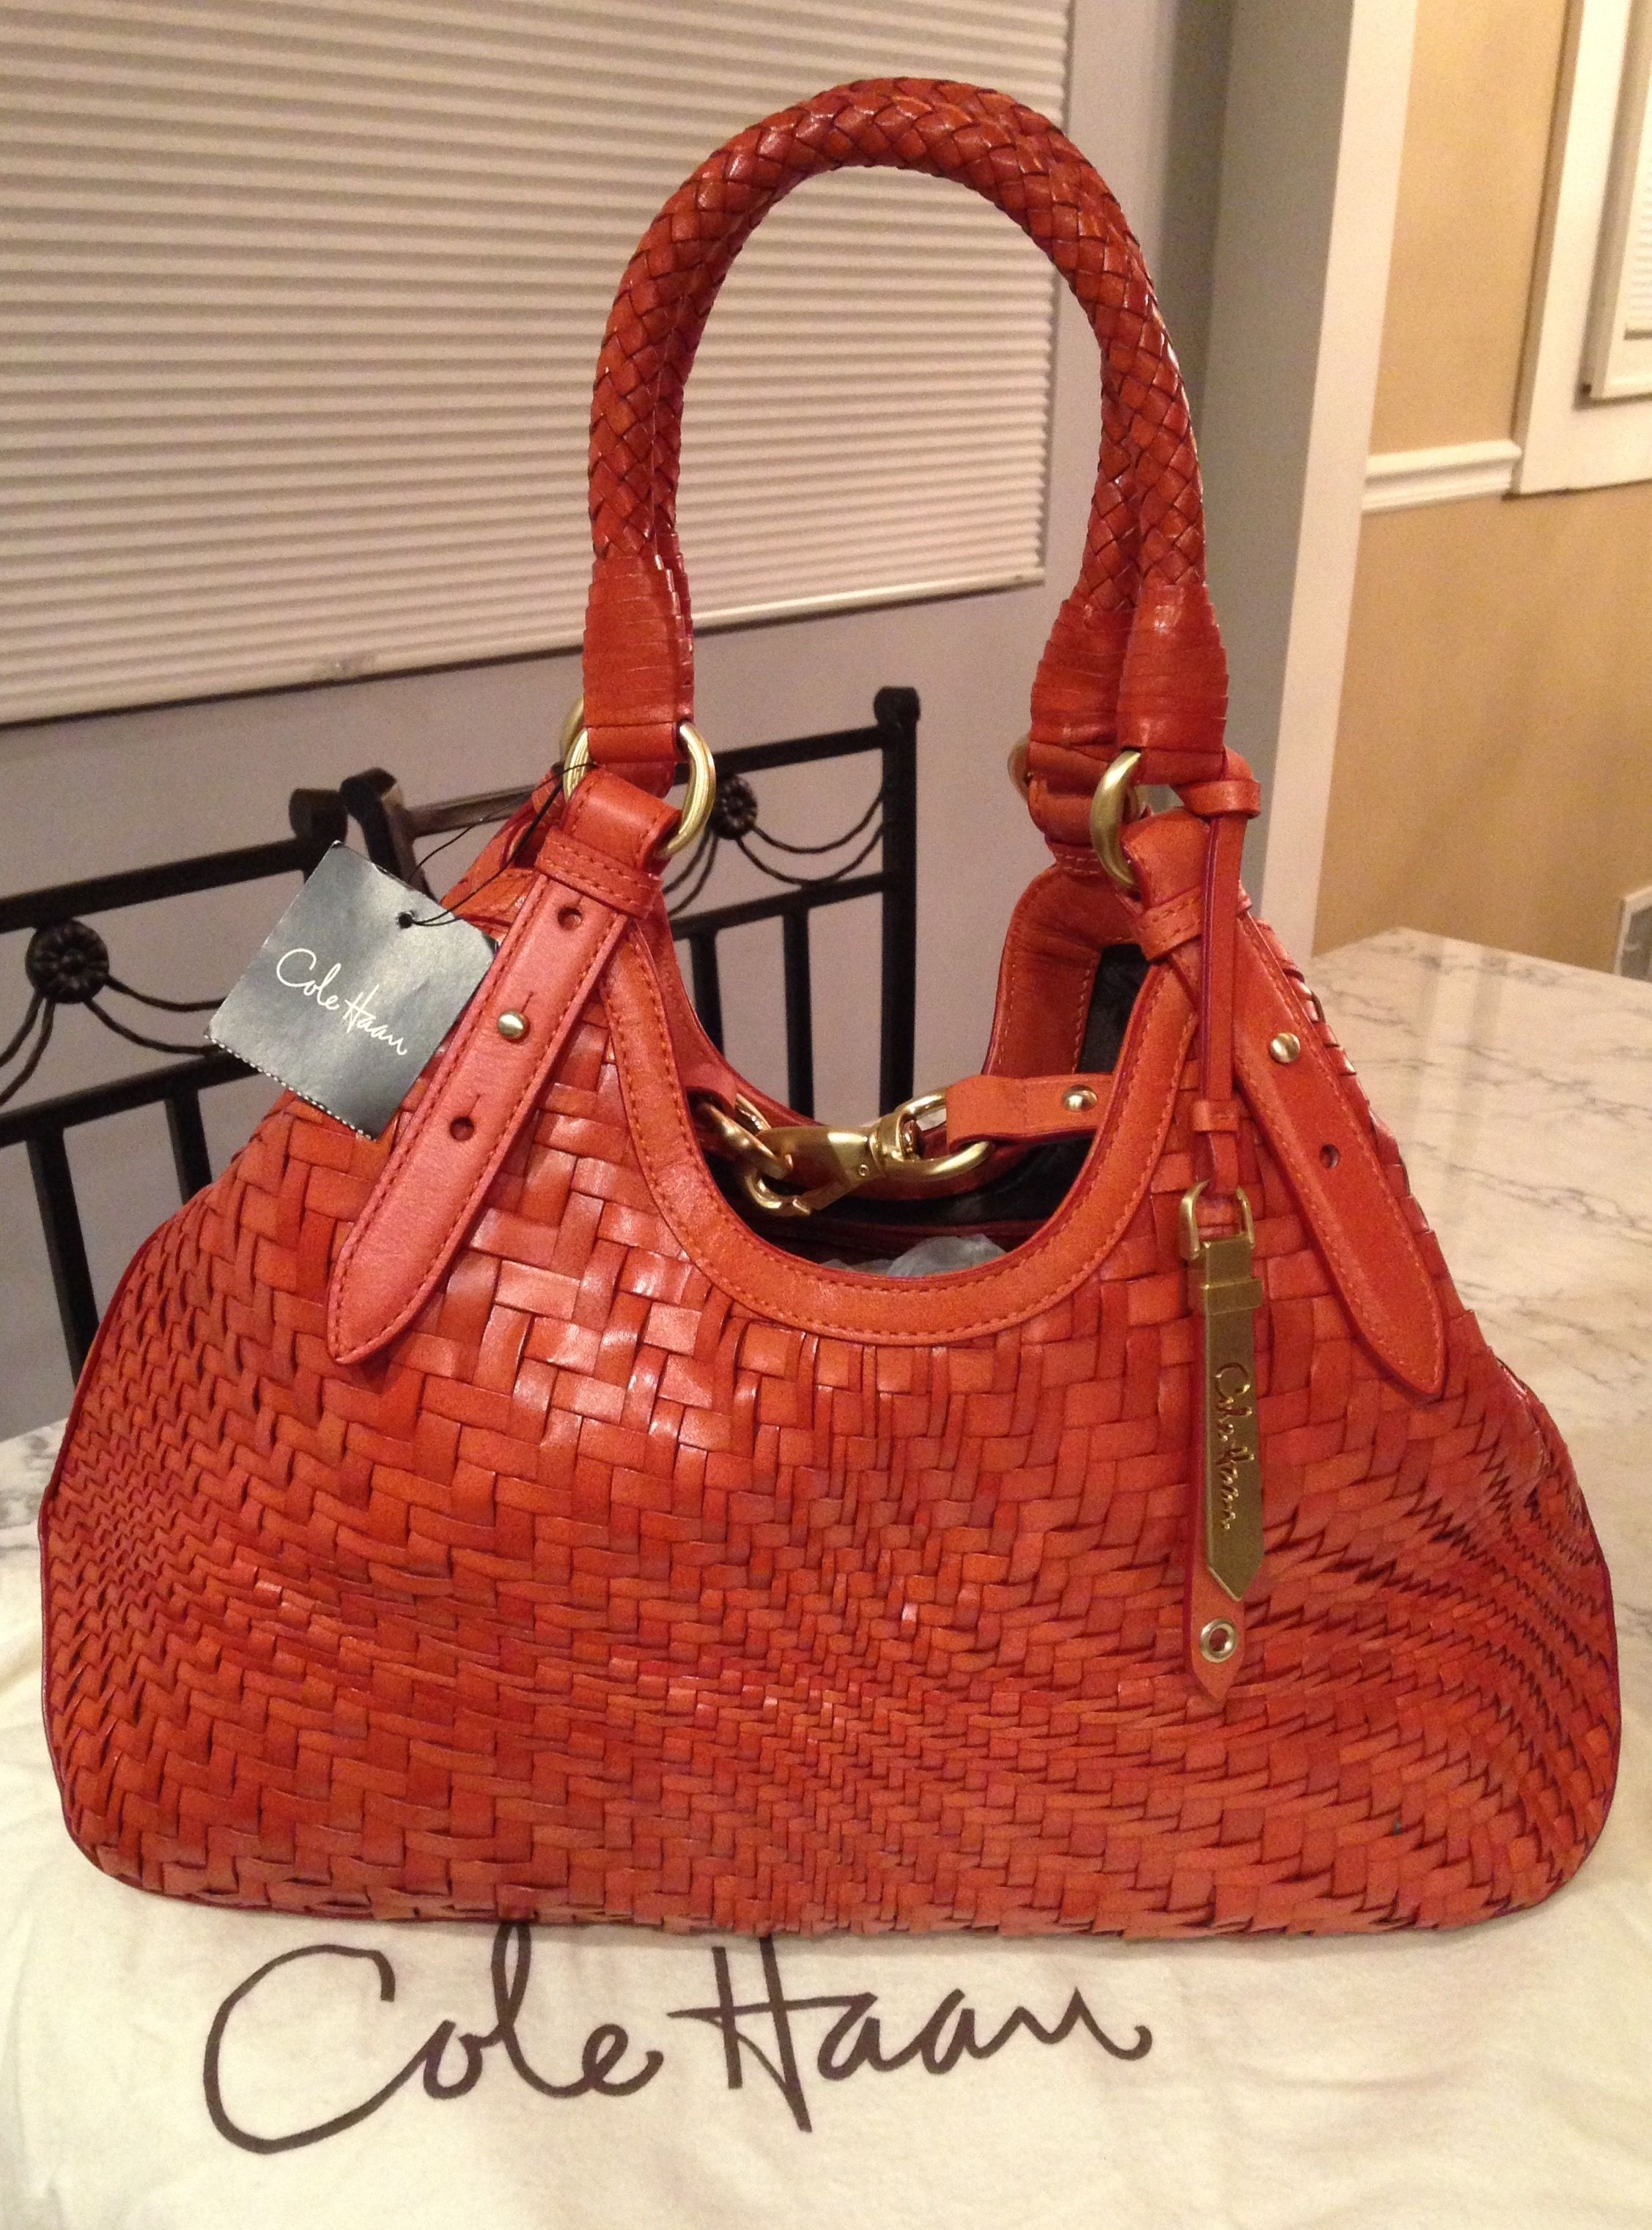 Cole Haan Nwt! Genevieve Woven Leather Hobo Satchel Handbag Spicy Orange    Golden Brown Tote Bag. Get one of the hottest styles of the season! 367e9f49df077